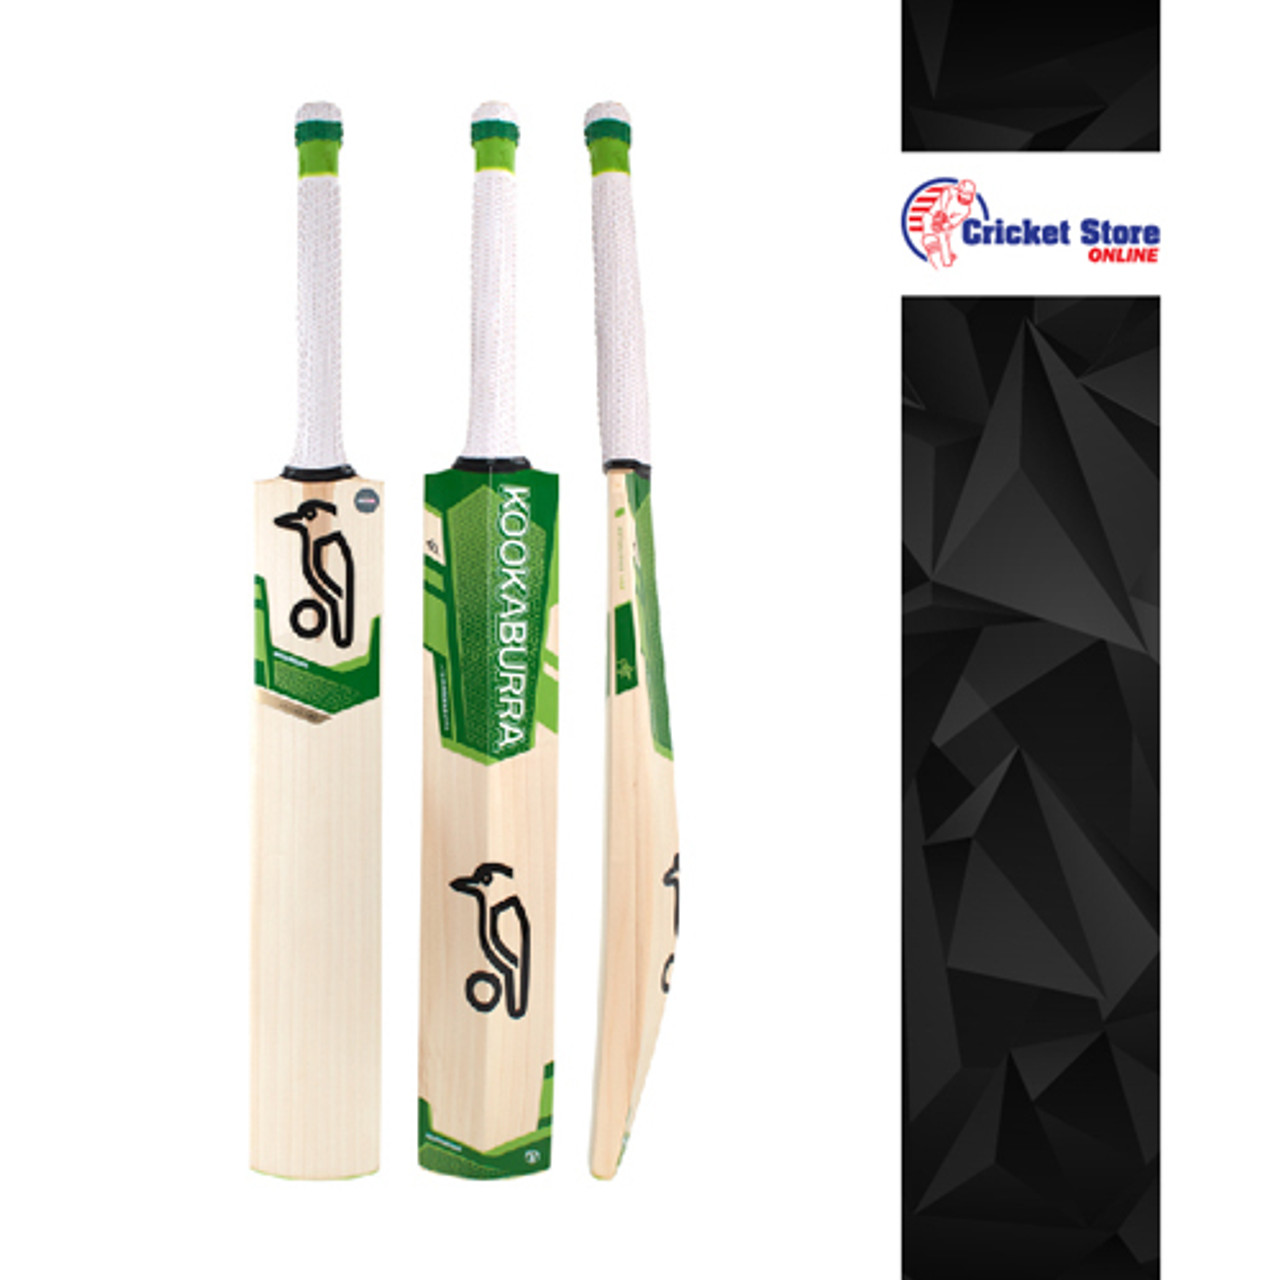 Kookaburra Kahuna Cricket Bat 2020